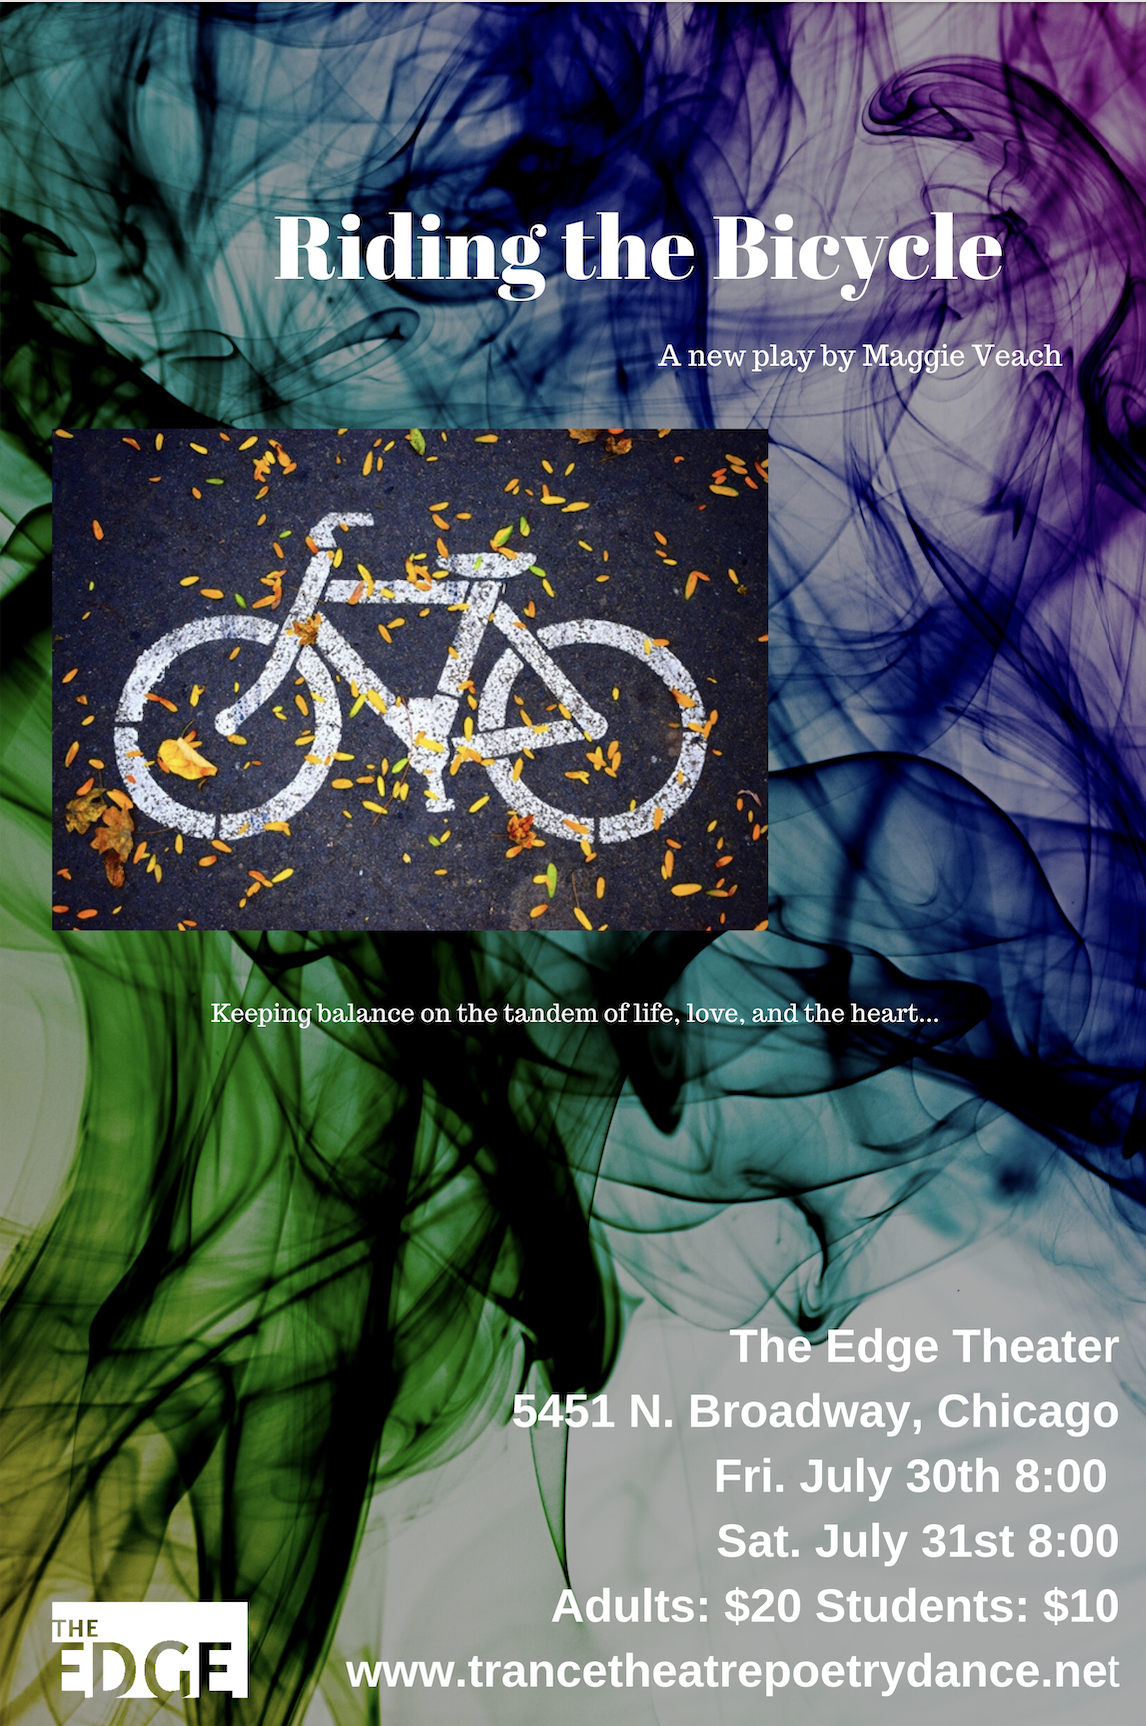 The Trance Presents Riding the Bicycle